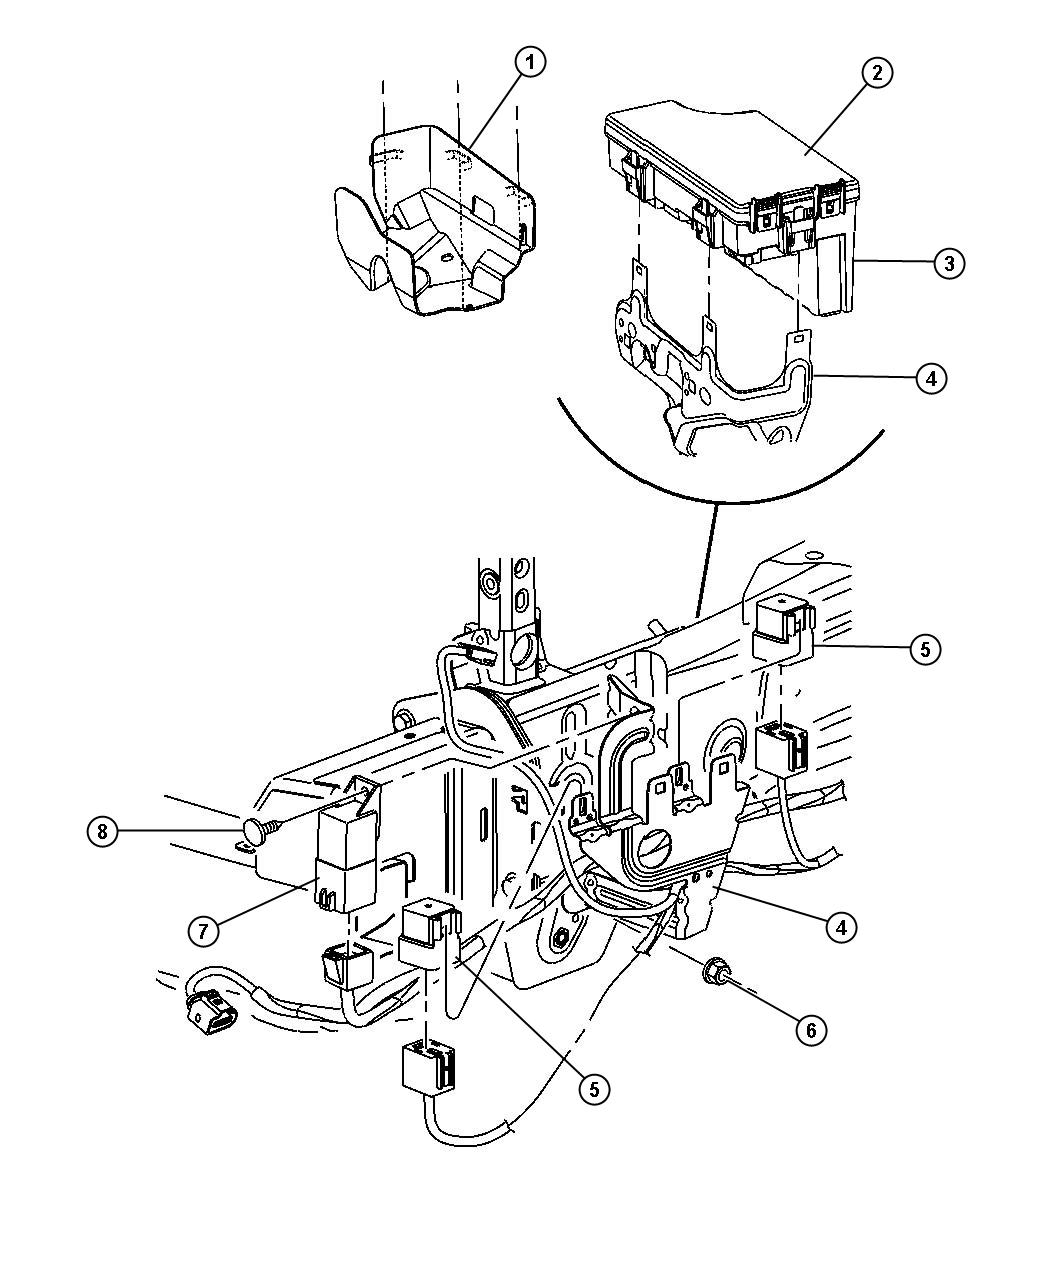 Dodge 3500 Fuel Filter Diagram besides P 0900c1528021810d as well 2003 Gmc Sonoma 2 2 Vacuum Line Diagram likewise 2000 Dodge Ram Bumper Plastic also Dorman Ignition Switch Wiring Diagram. on window regulator replacement